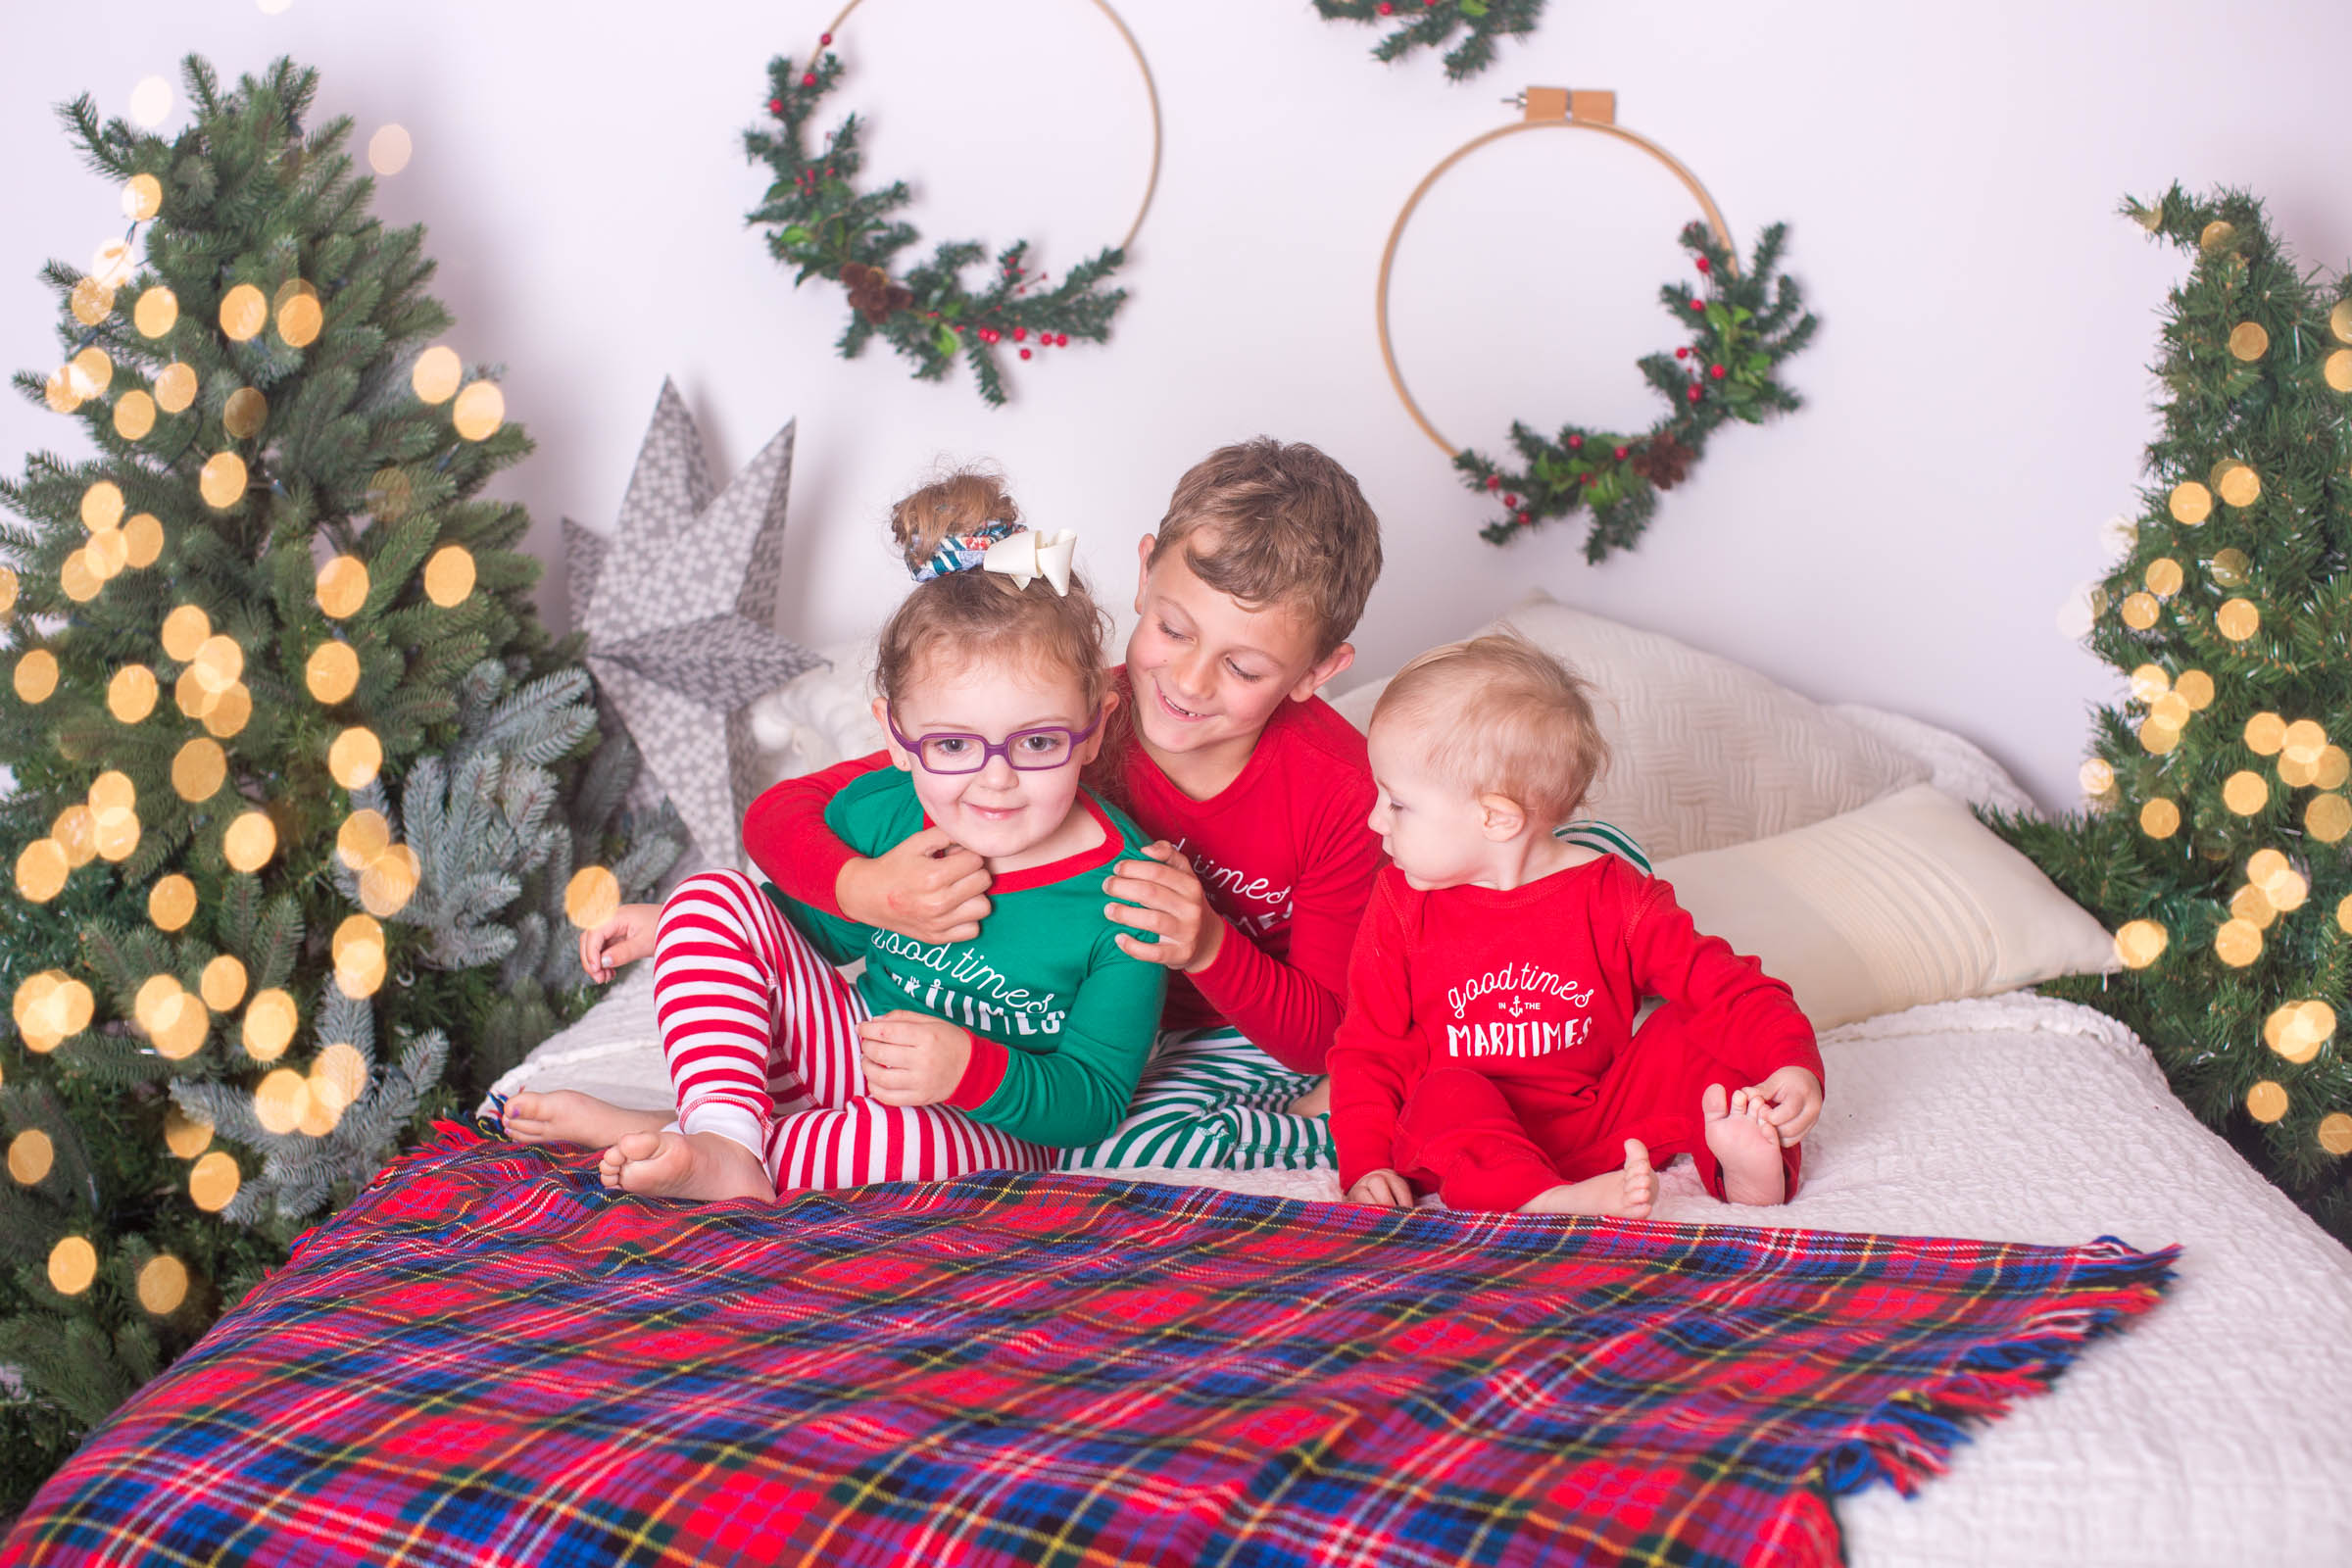 Image of 3 children sitting on bed during Christmas photoshoot